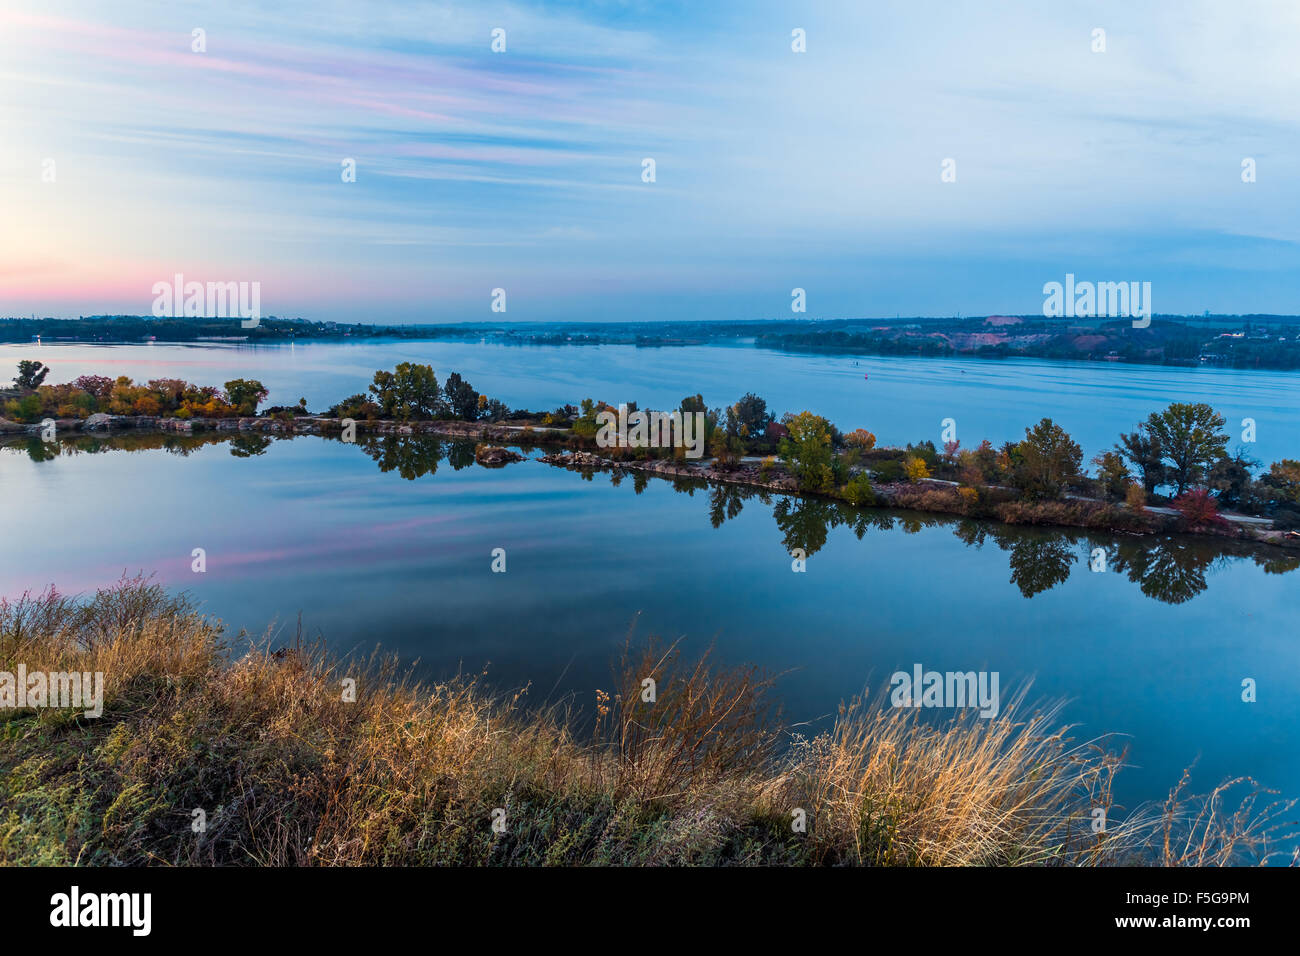 Tenderly colored sunset landscape at East European waterfront - Stock Image